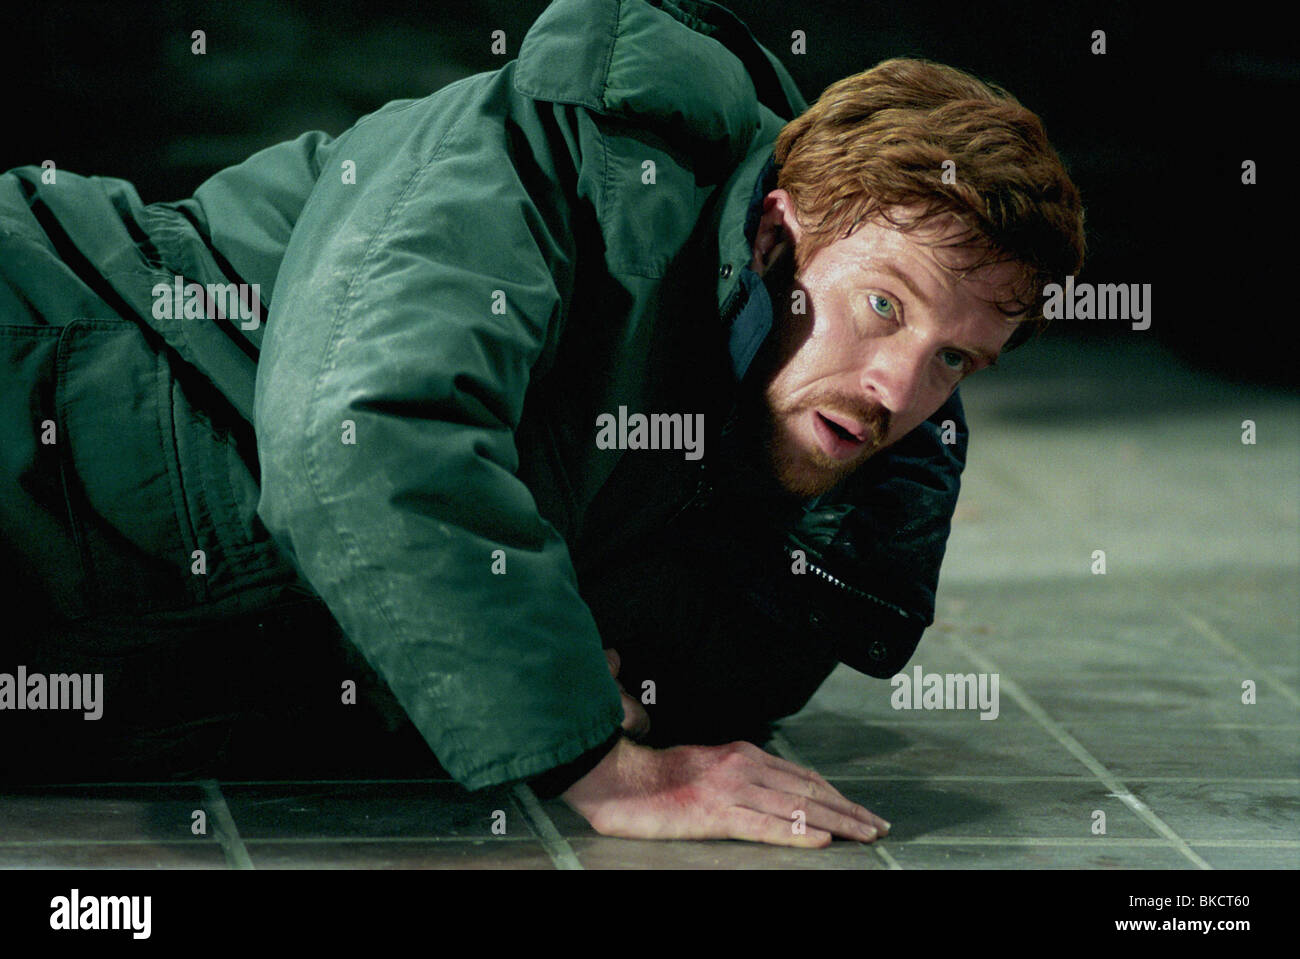 DREAMCATCHER (2003) DAMIAN LEWIS DRCH 002-C269 - Stock Image